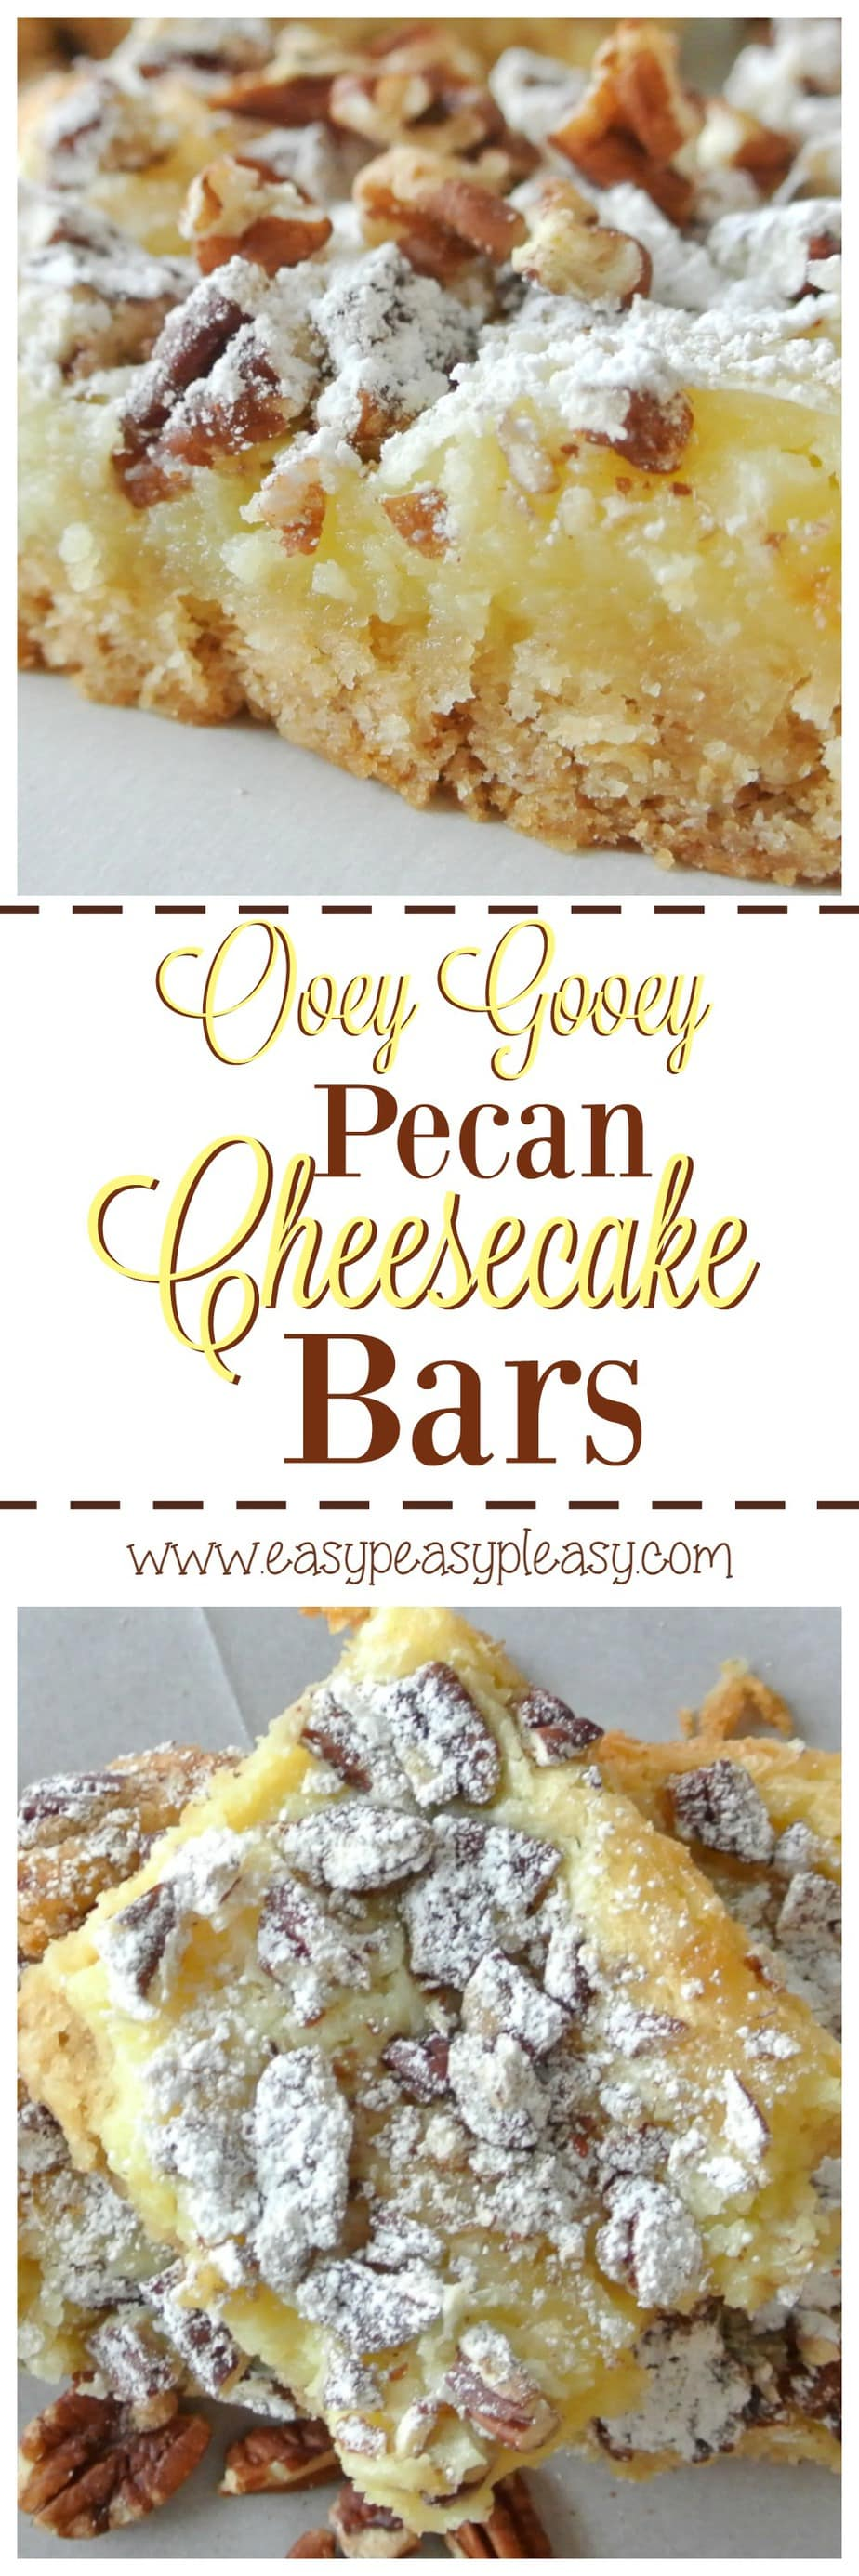 Ooey Gooey Pecan Cheesecake Bars are super easy to make and oh so delicious!